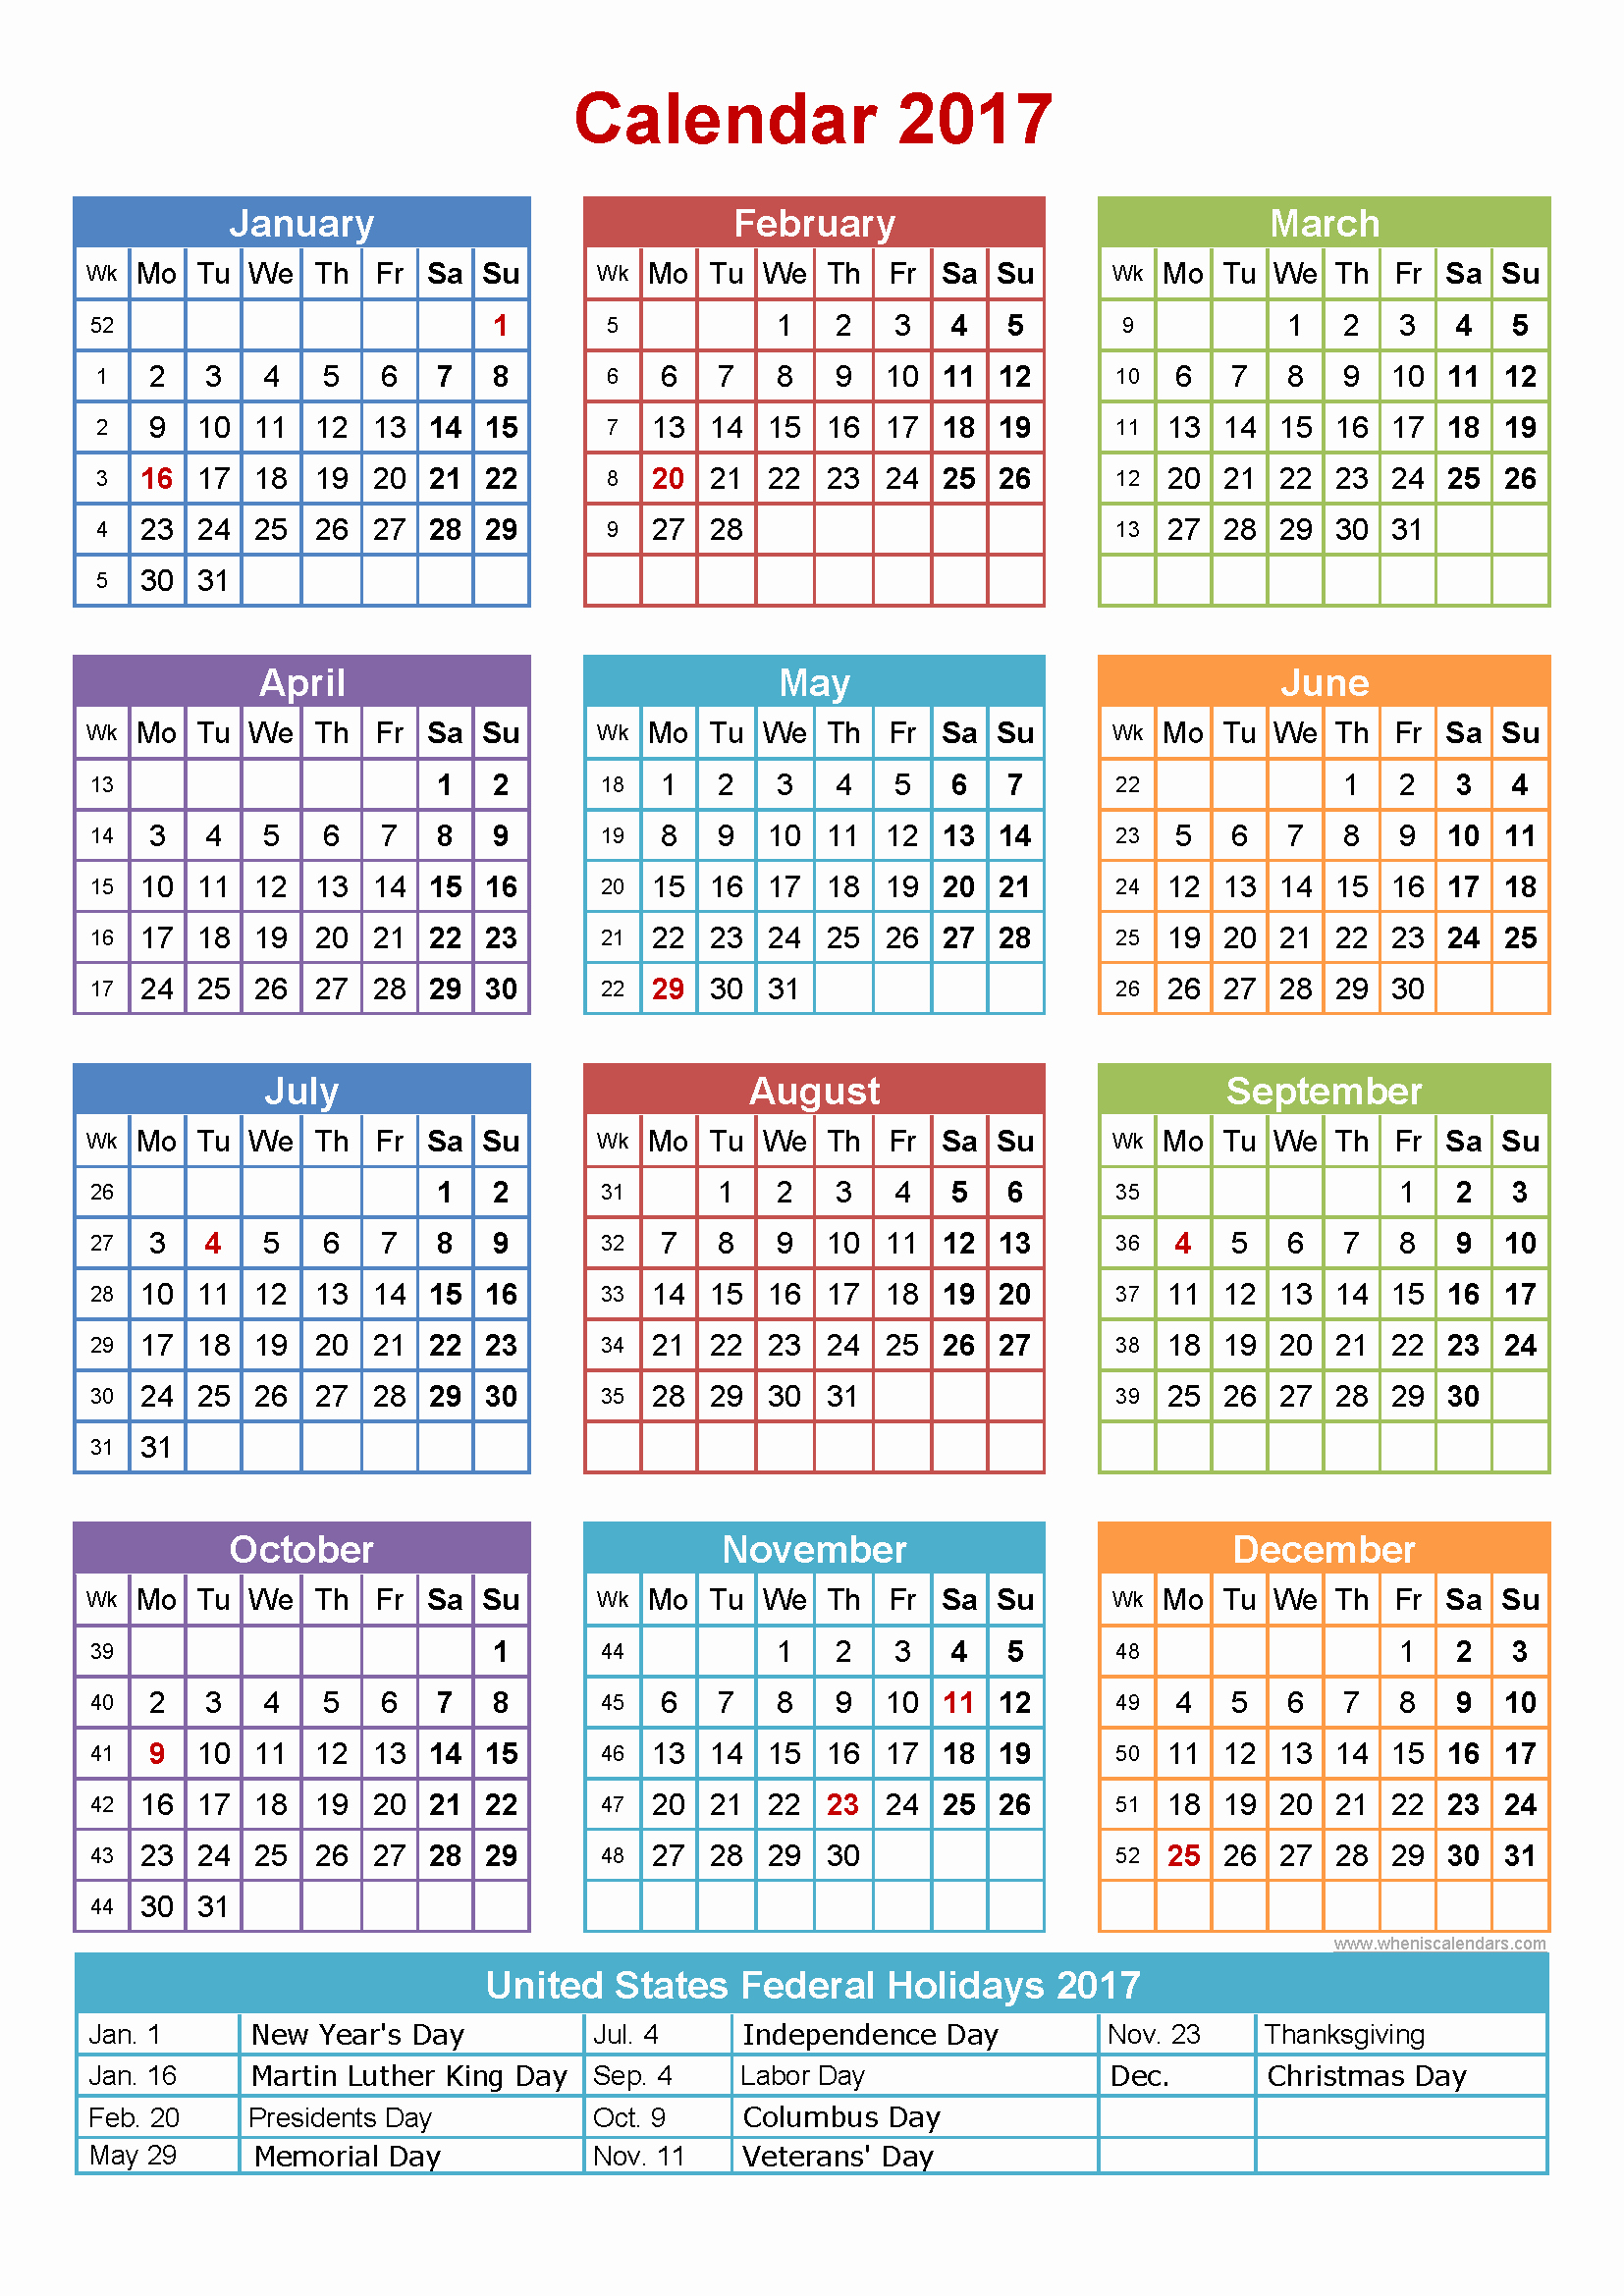 Excel Calendar 2017 with Holidays Awesome 2017 Calendar with Holidays